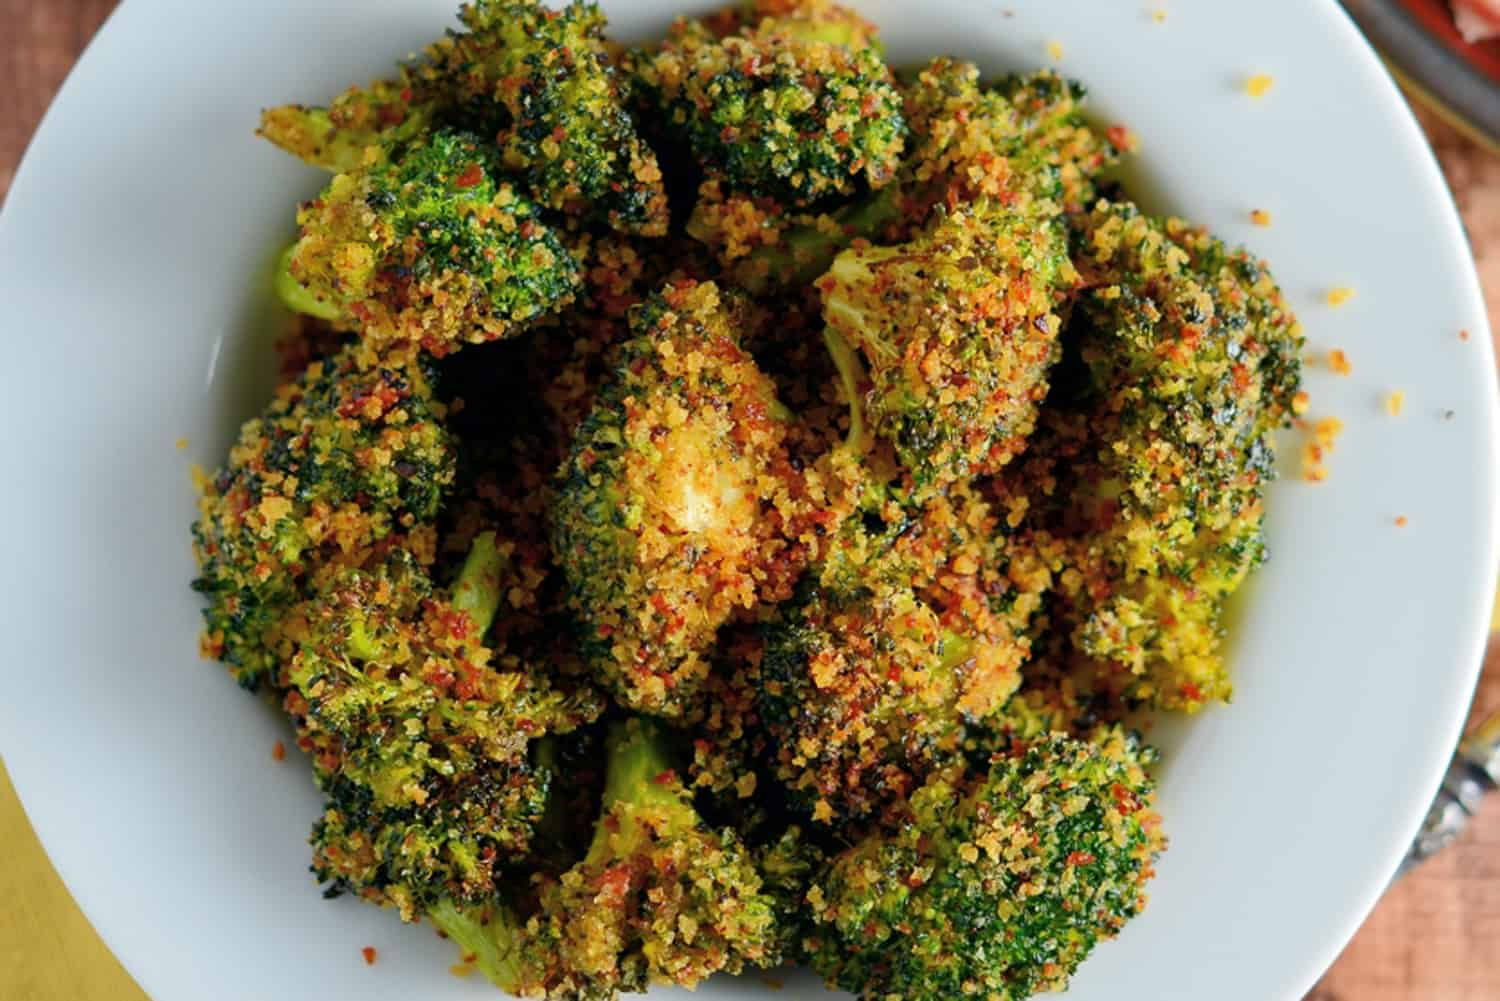 Crunchy baked broccoli tossed in a crisp, tangy mix with two secret ingredients that will make this broccoli recipe your favorite side dish!   #bakedbroccoli #ovenbakedbroccoli www.savoryexperiments.com